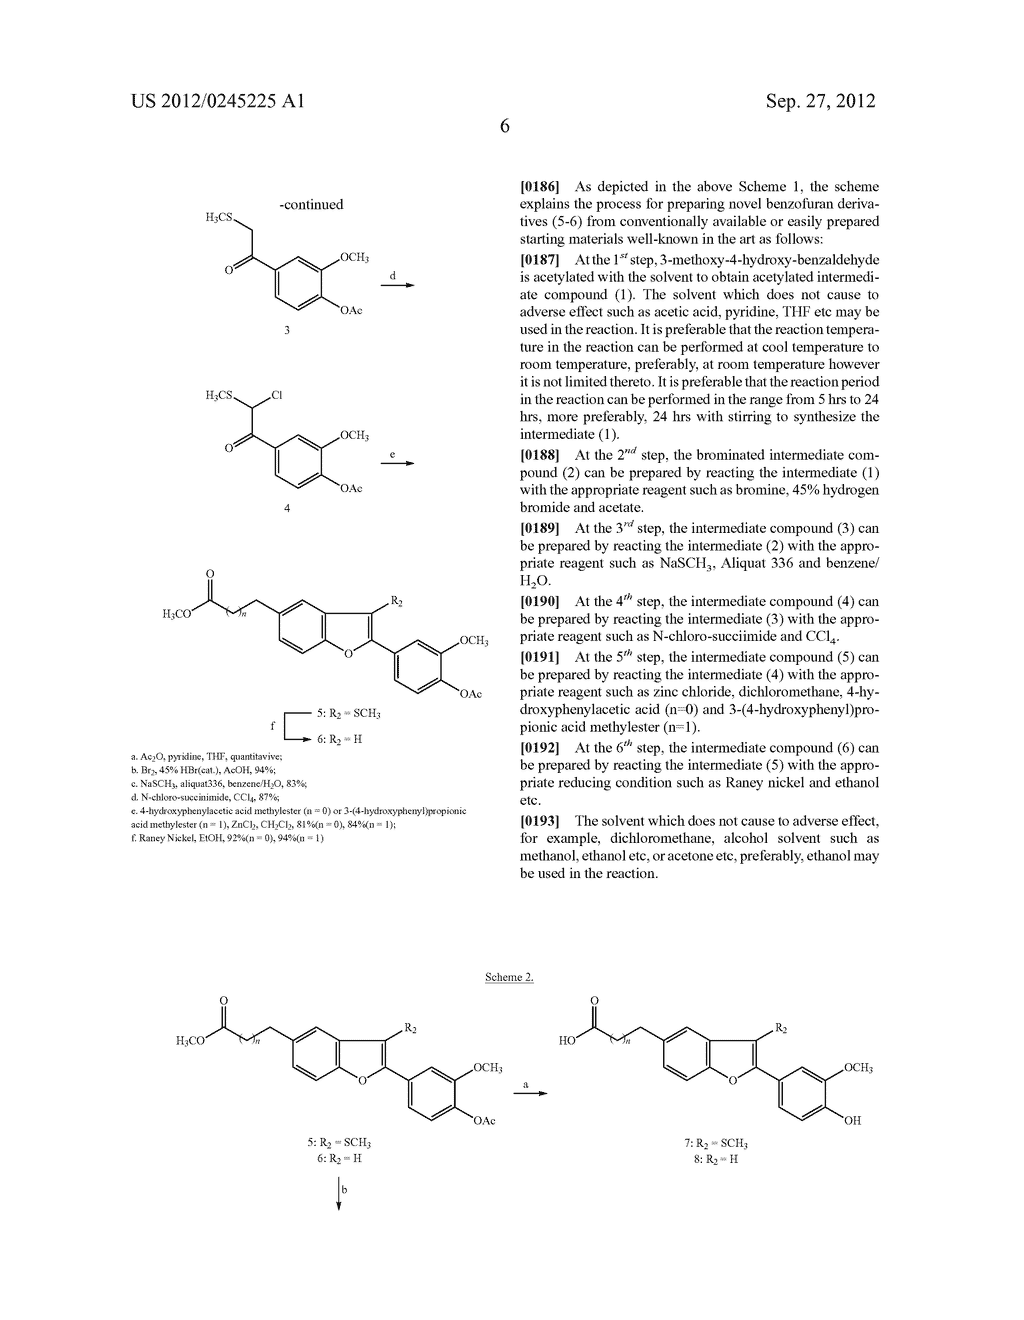 NOVEL BENZOFURAN TYPE DERIVATIVES, A COMPOSITION COMPRISING THE SAME FOR     TREATING OR PREVENTING COGNITIVE DYSFUNCTION AND THE USE THEREOF - diagram, schematic, and image 22